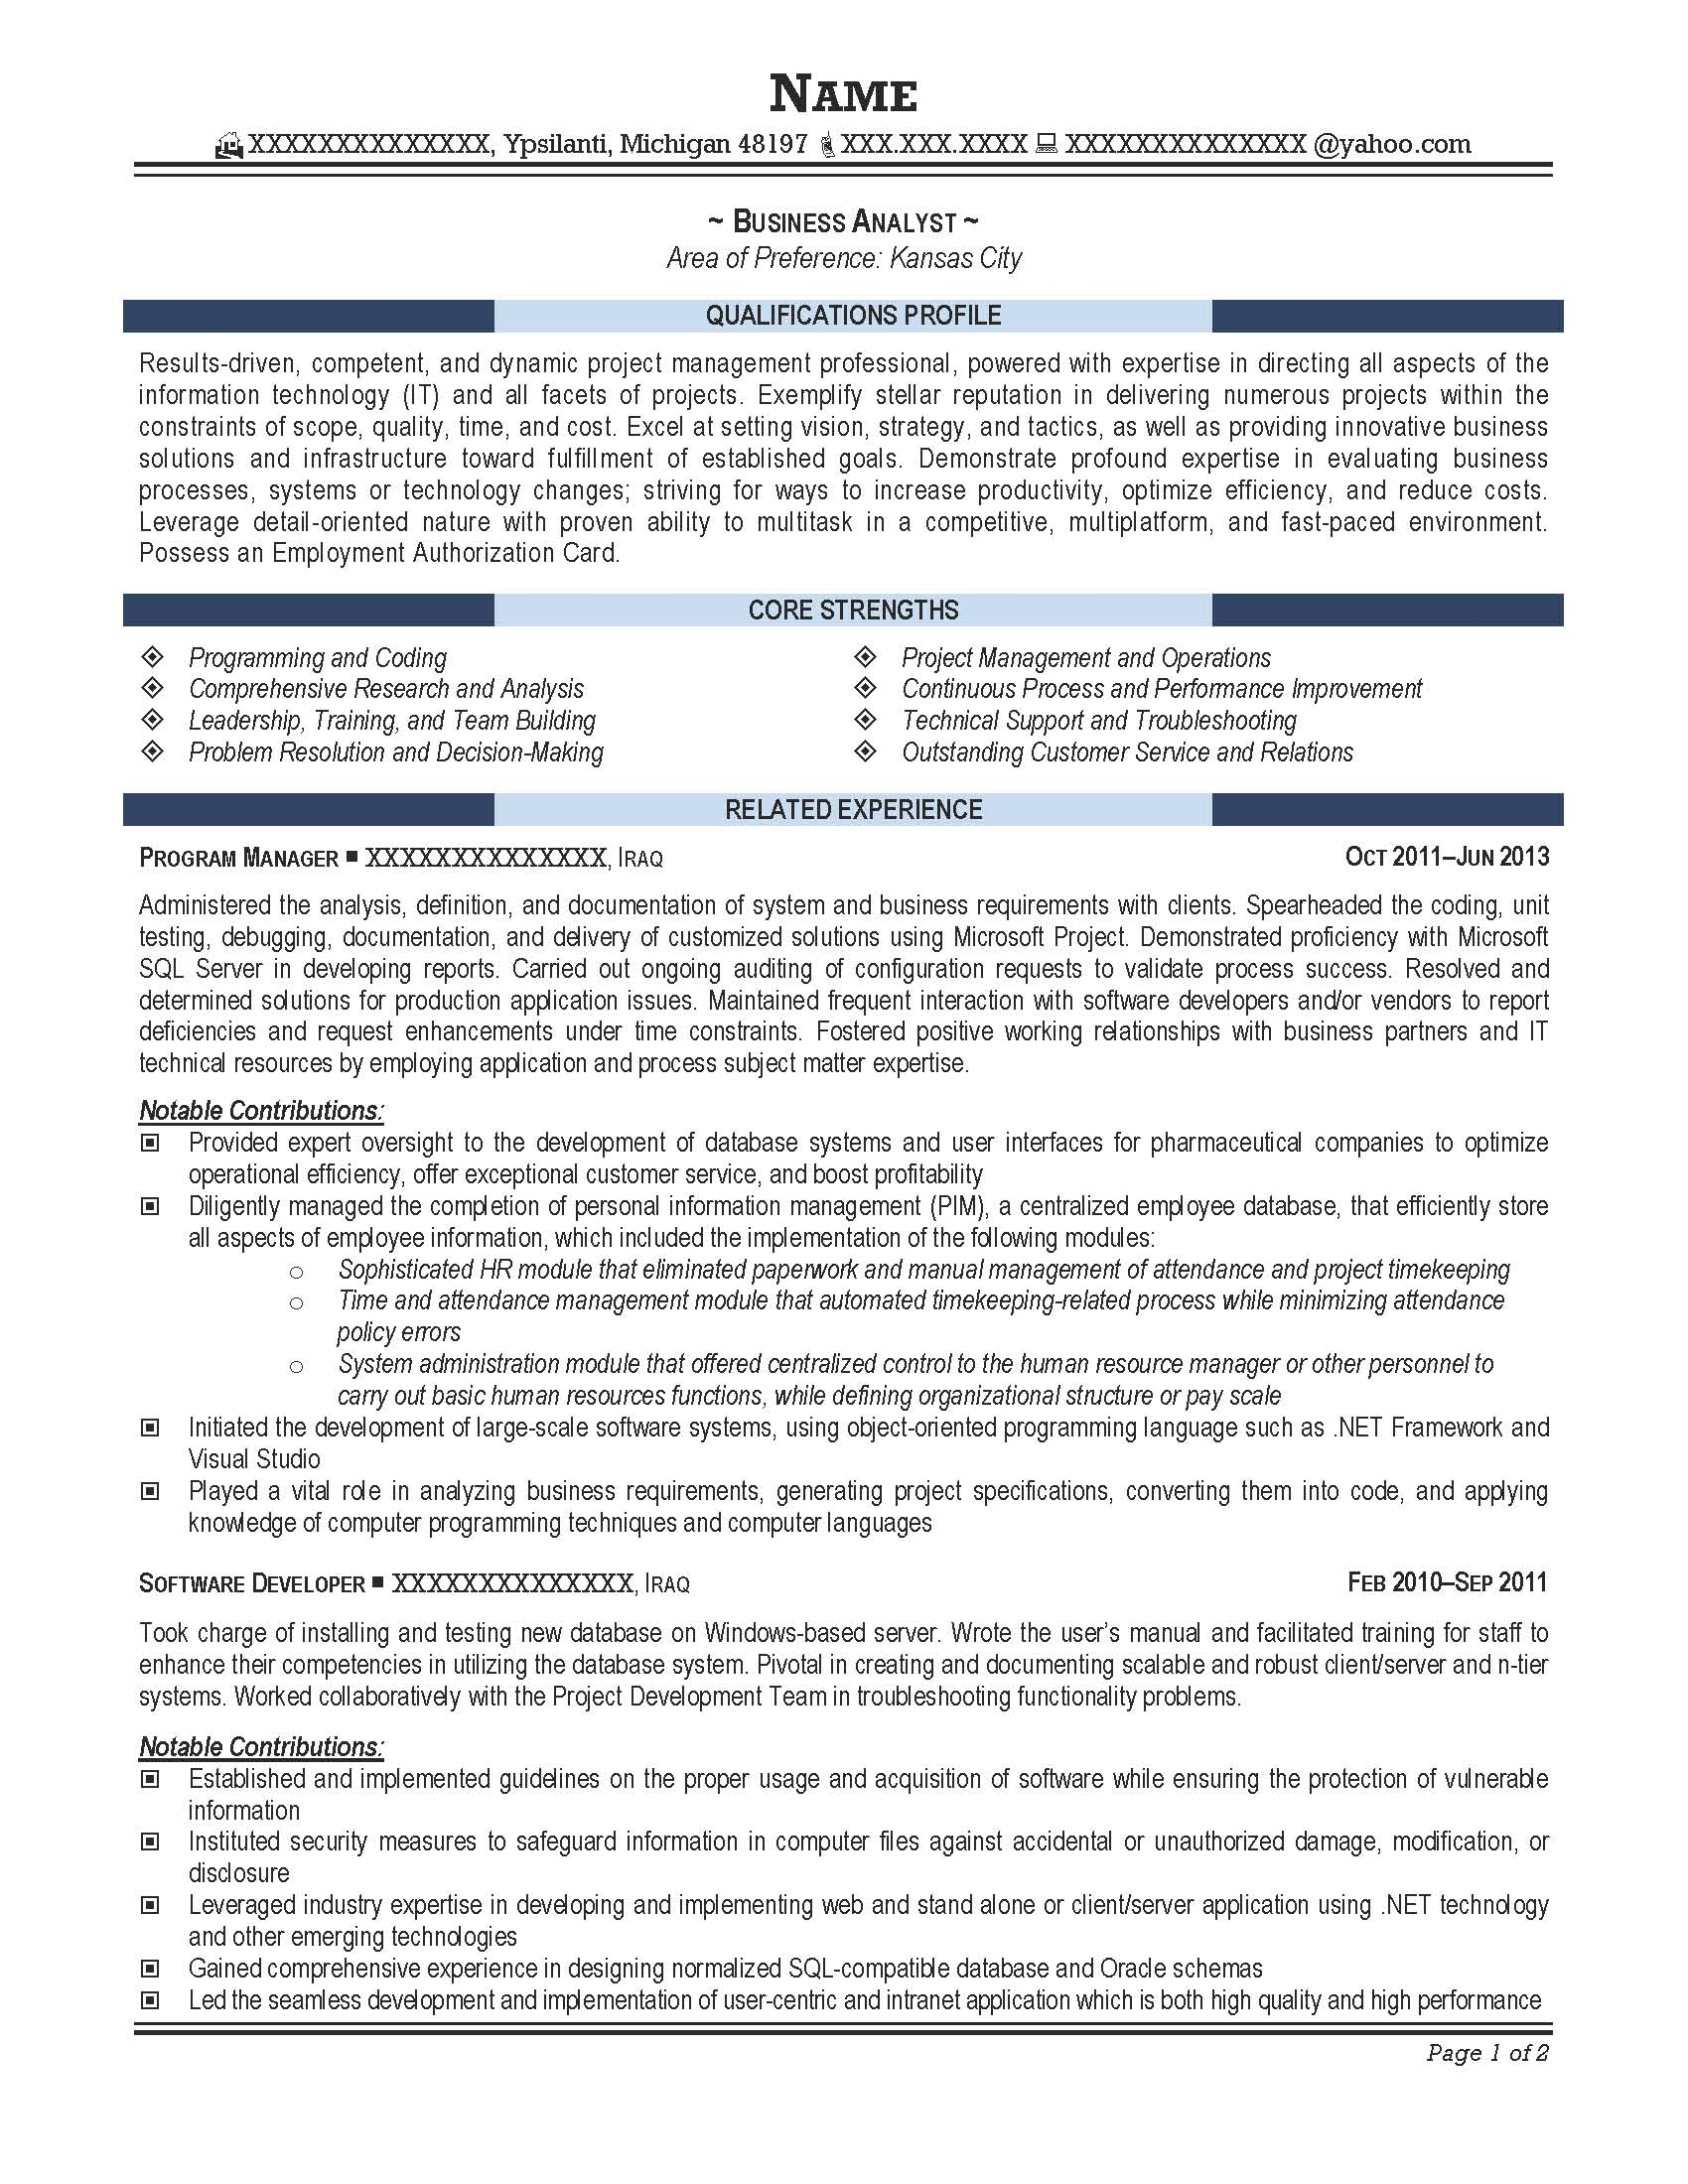 business analyst resume sample after 1 resume samples profile - Examples Of Professional Resumes